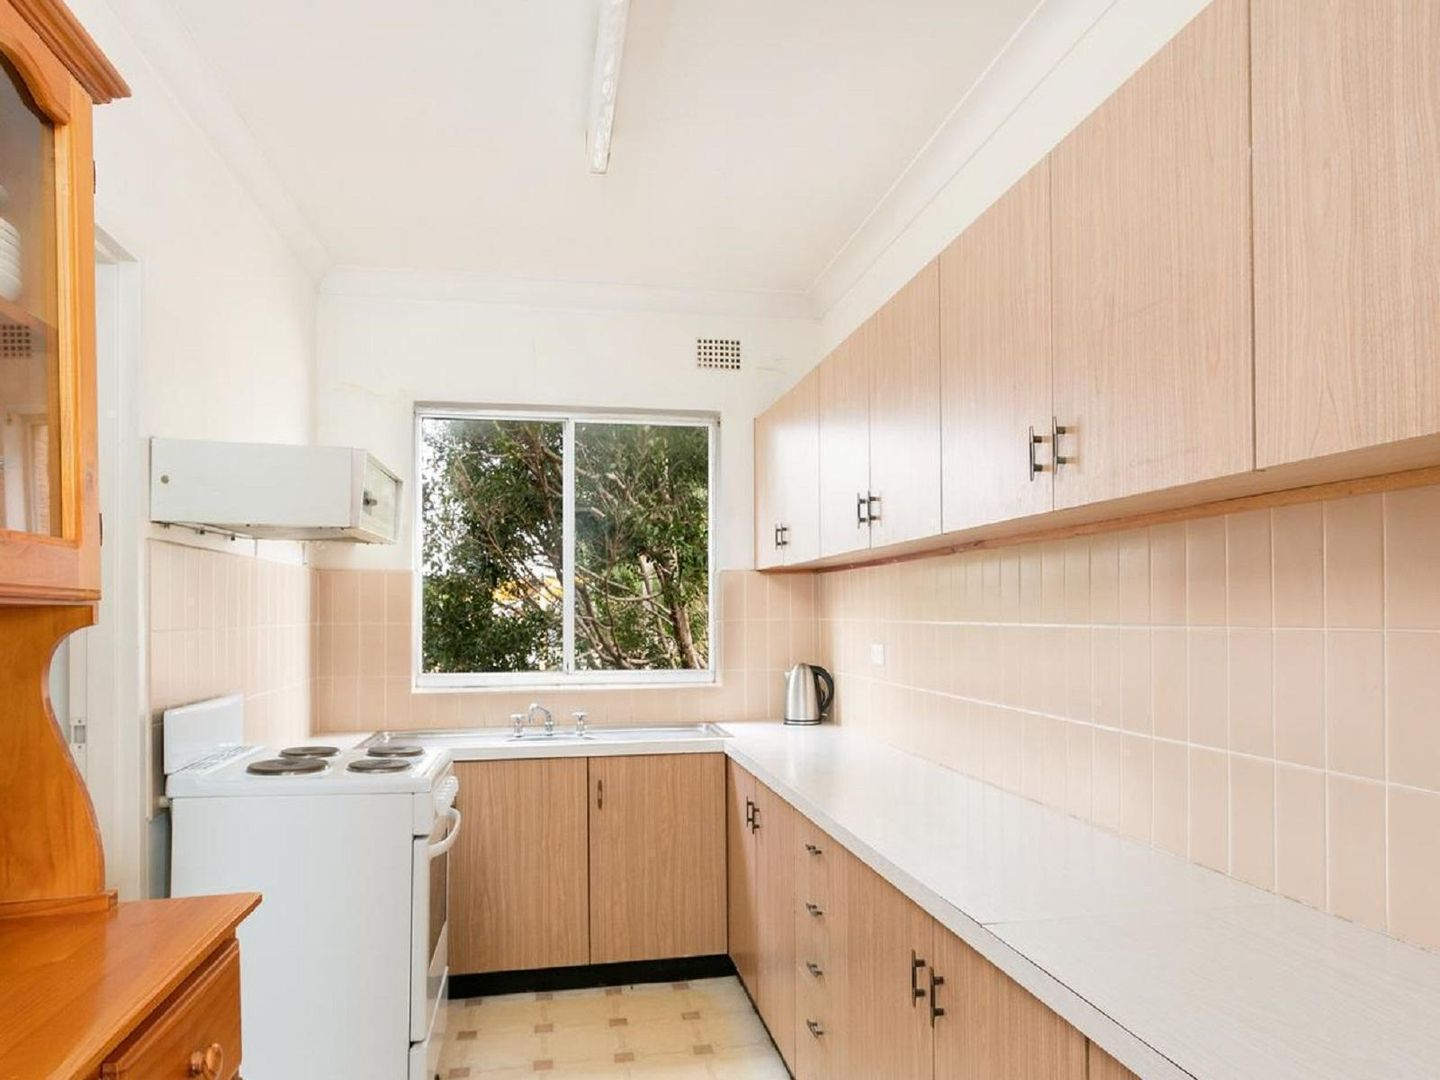 16/30 Malcolm Street, Narrabeen NSW 2101, Image 2